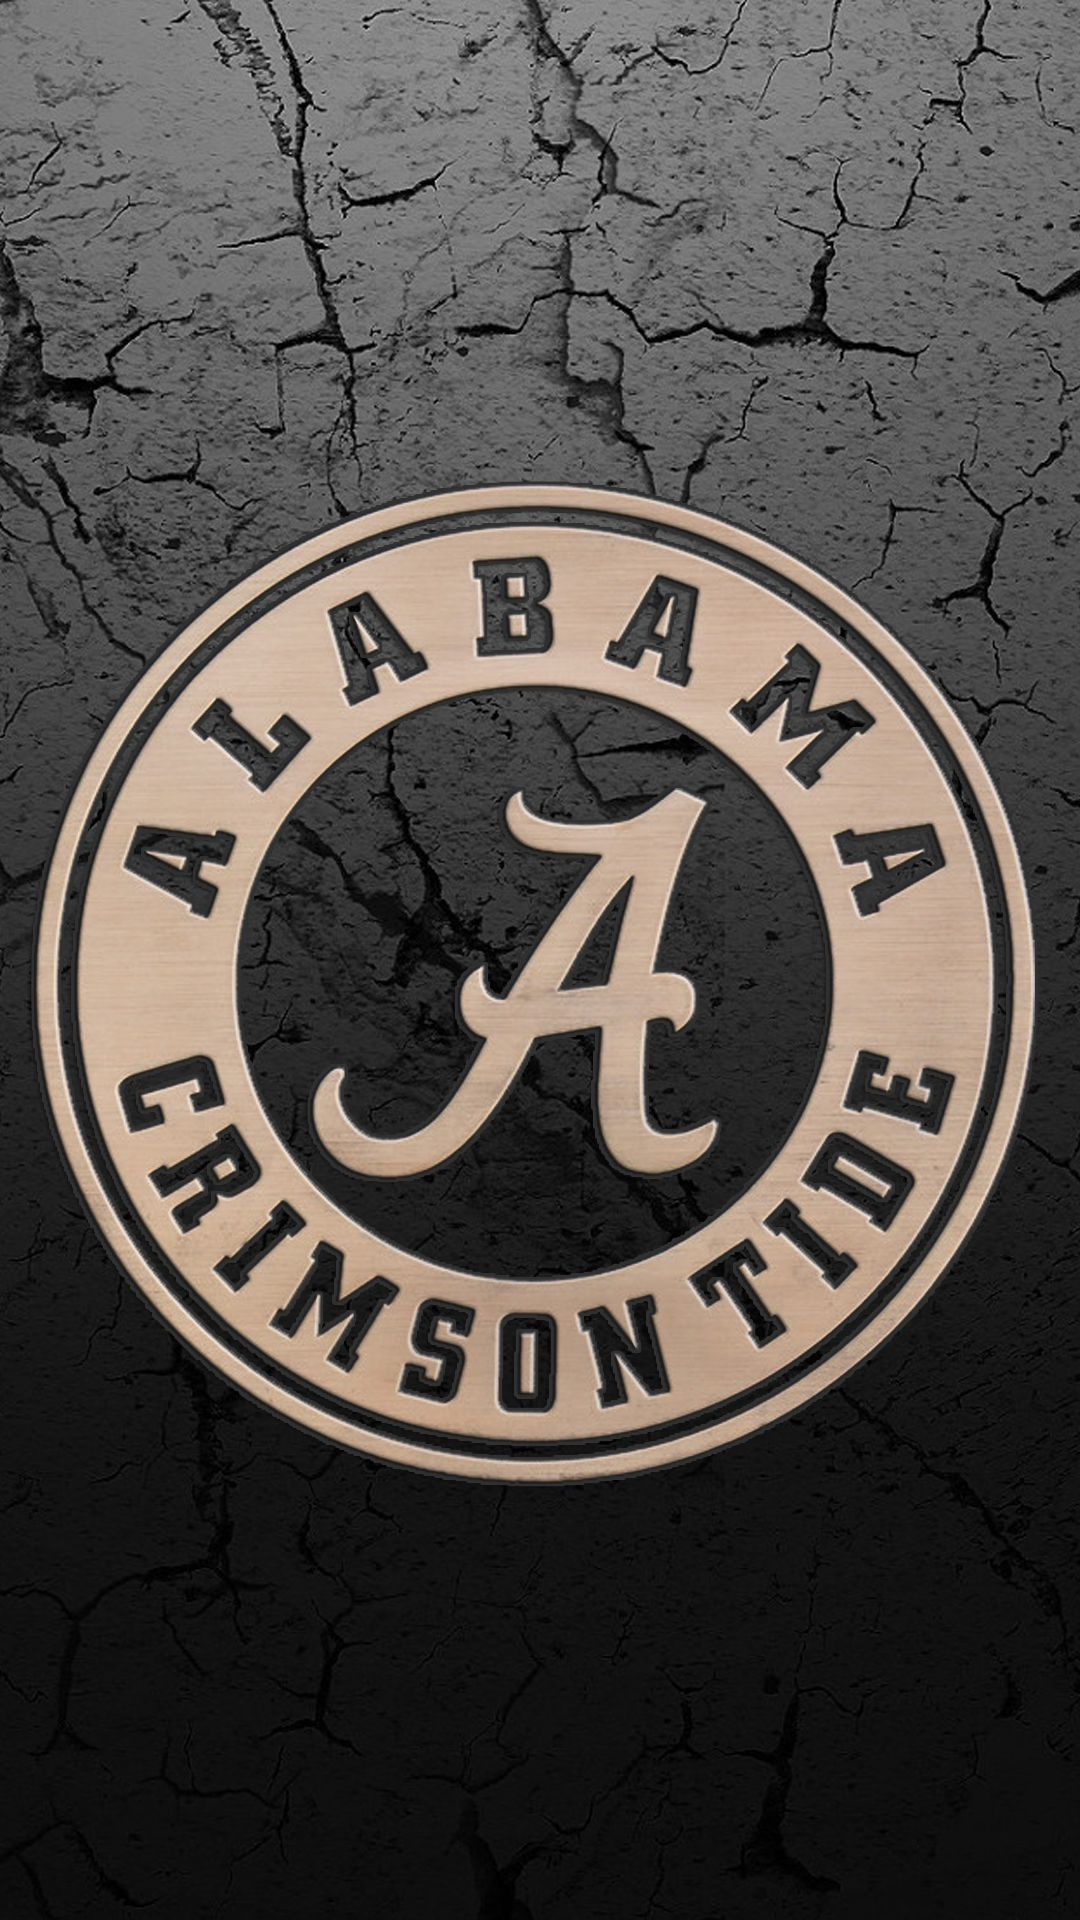 Free Alabama Crimson Tide Wallpapers Wallpaper Hd Wallpapers